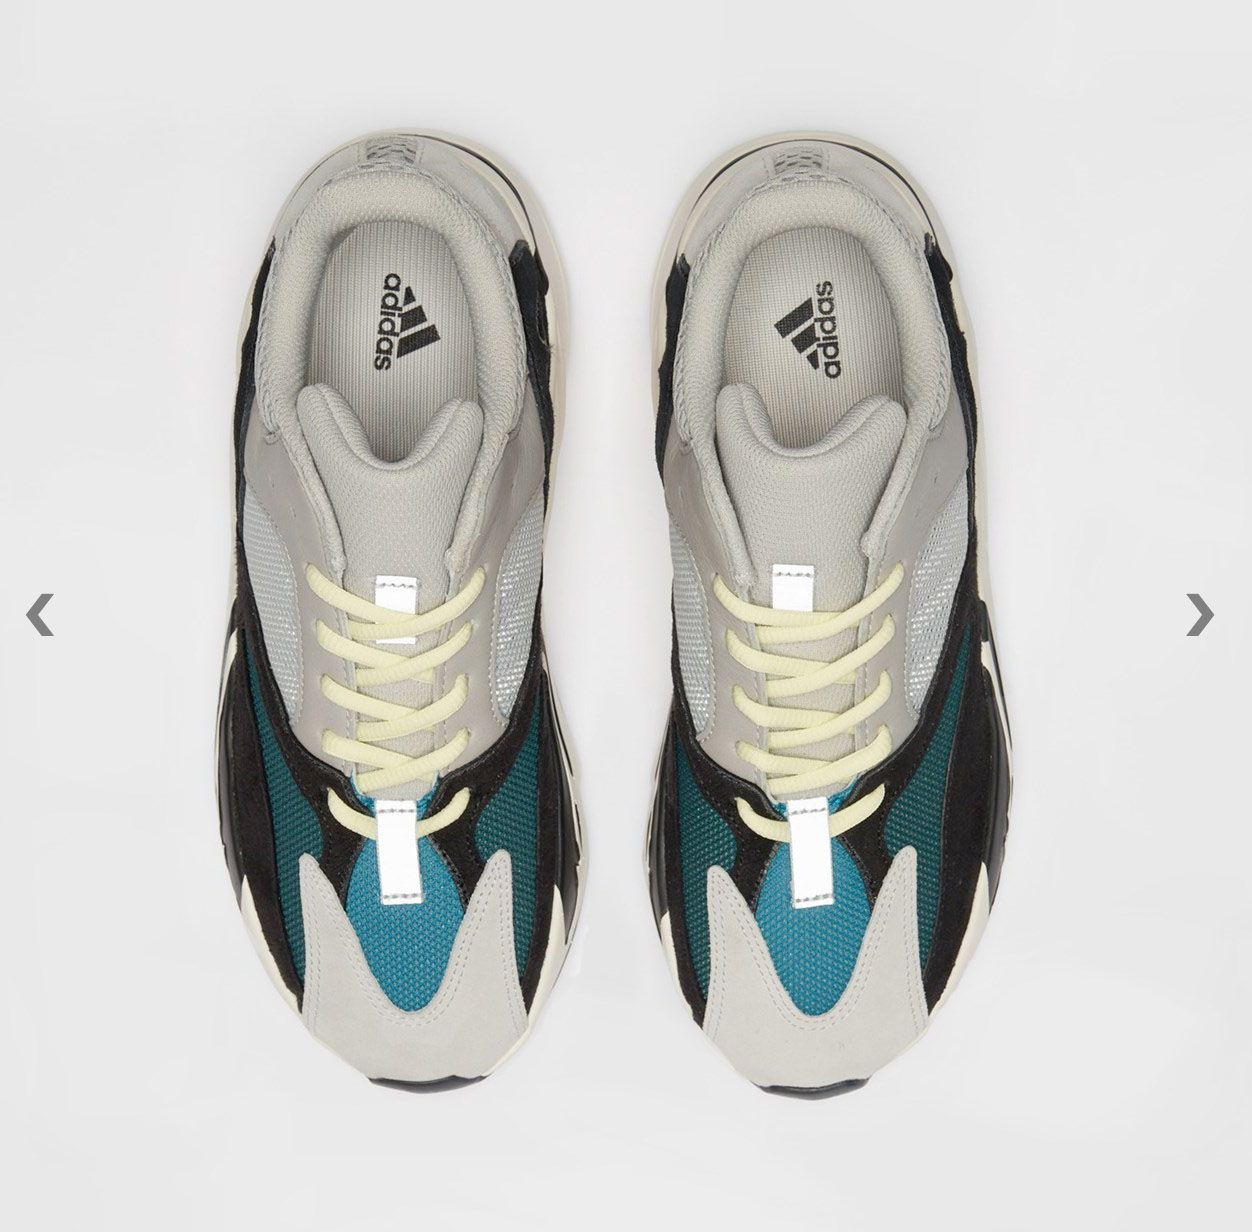 e81d096a3b1b9 Adidas Yeezy Boost 700 - Sneakers Release